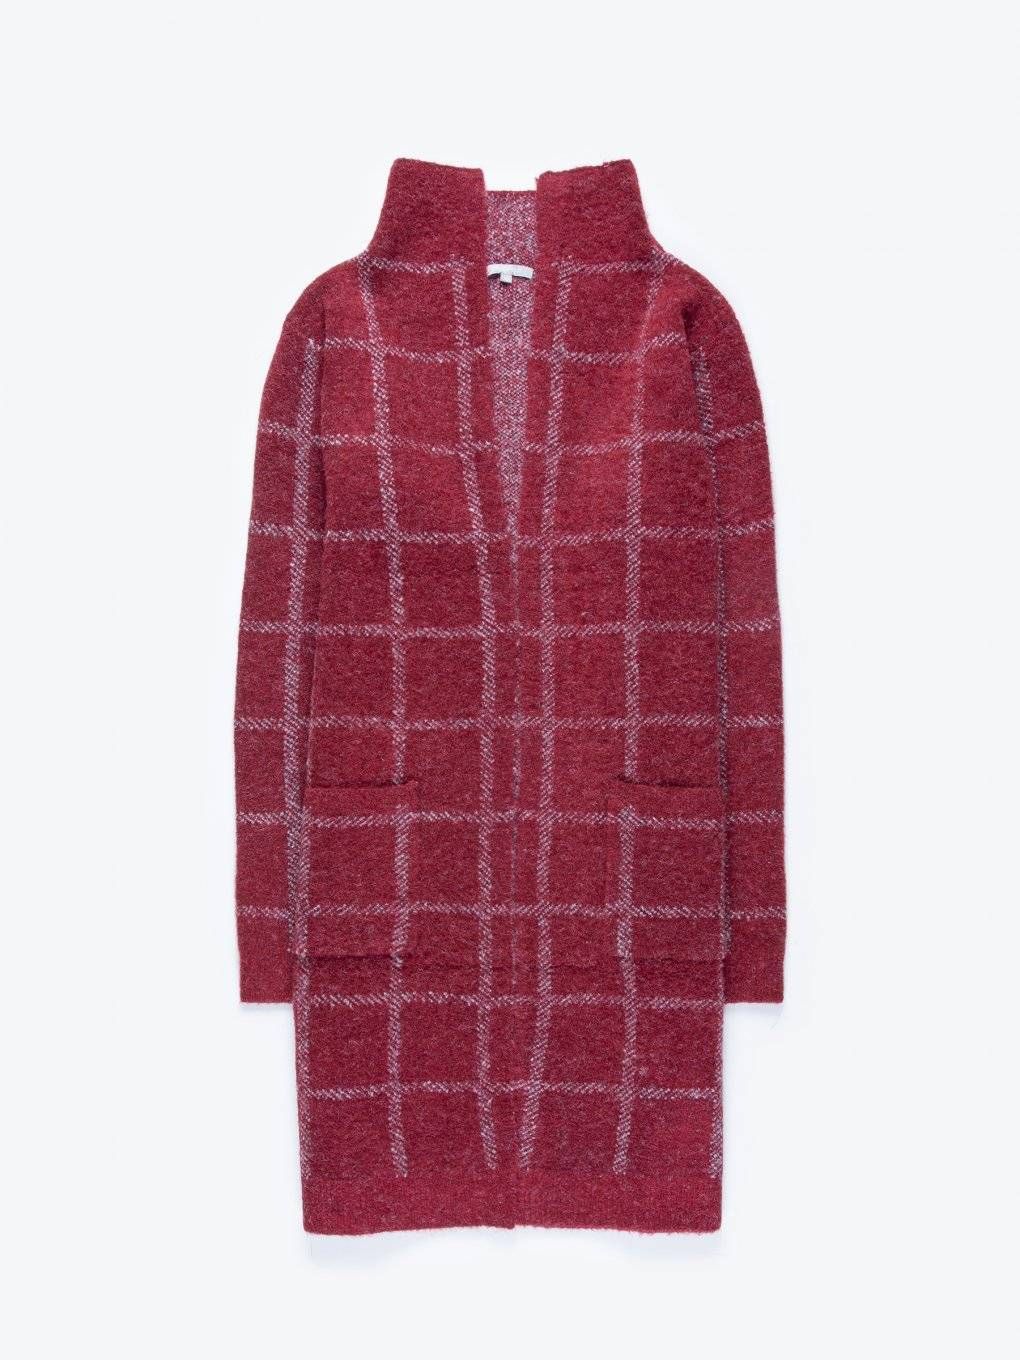 Plaid longline cardigan with pockets